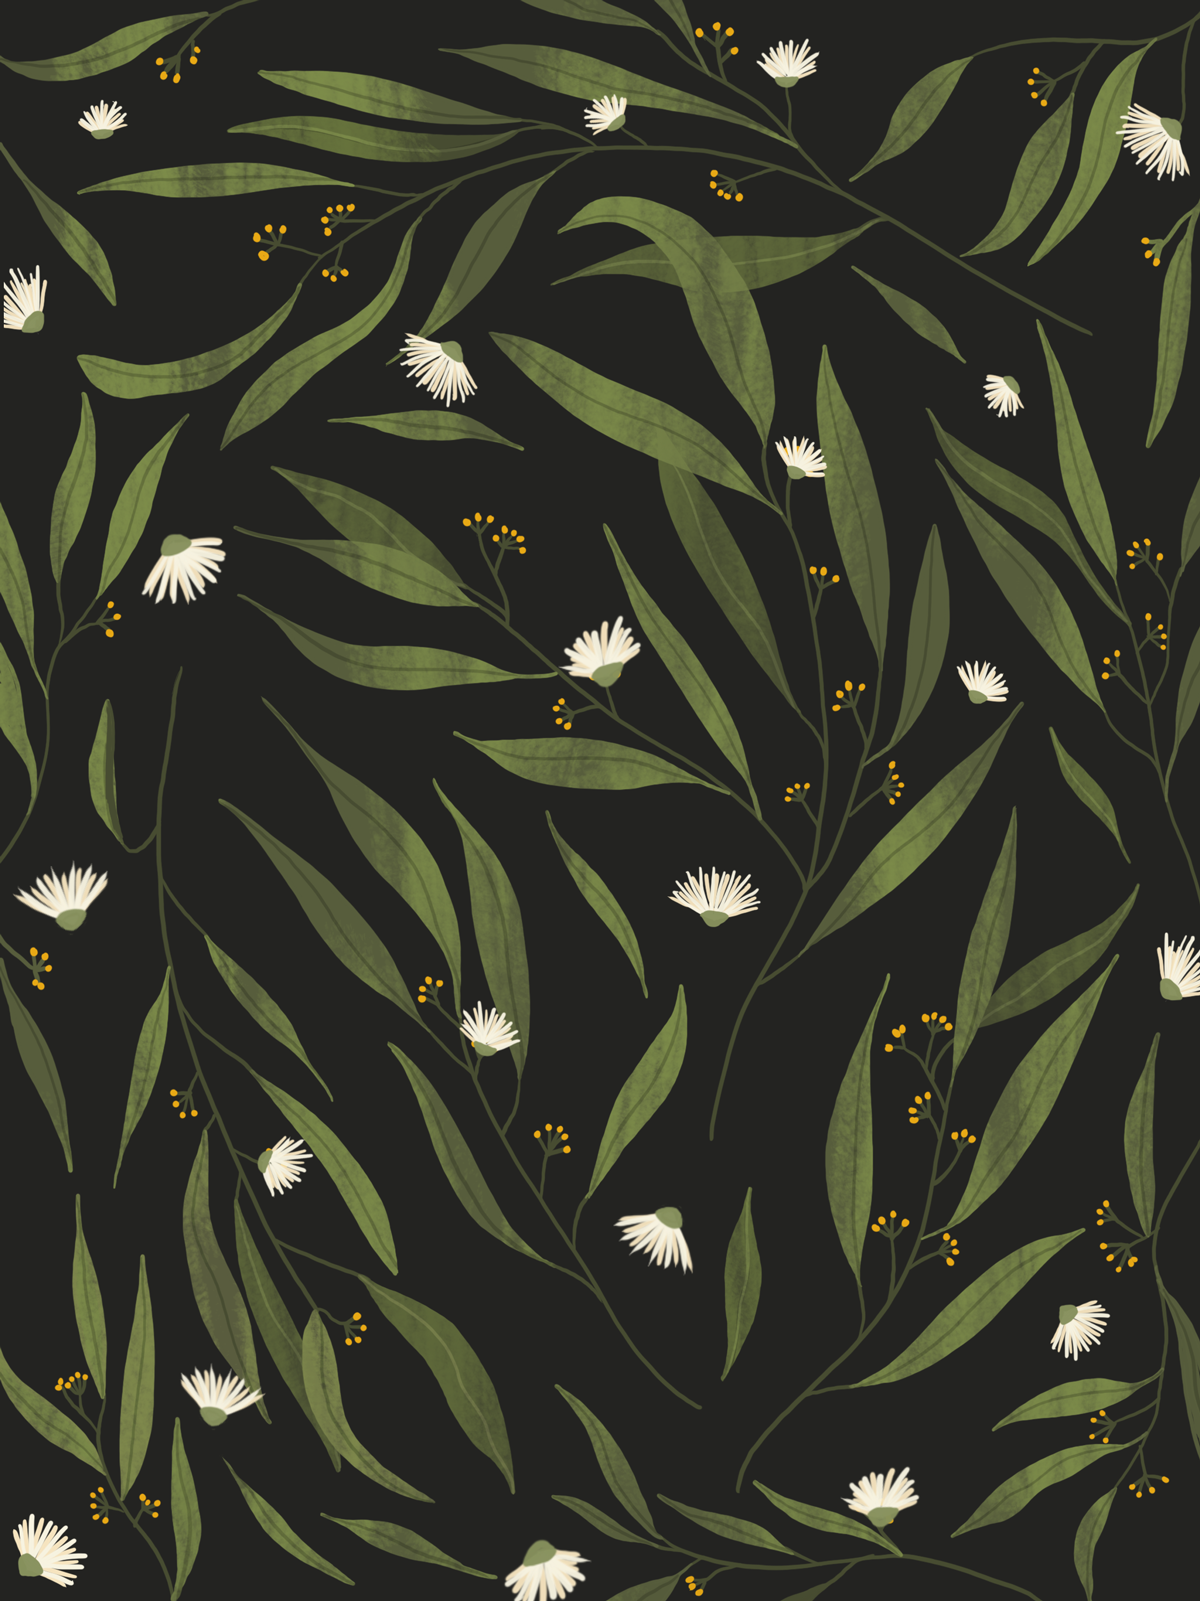 BG_ elemental - Eucalypt-black--pattern